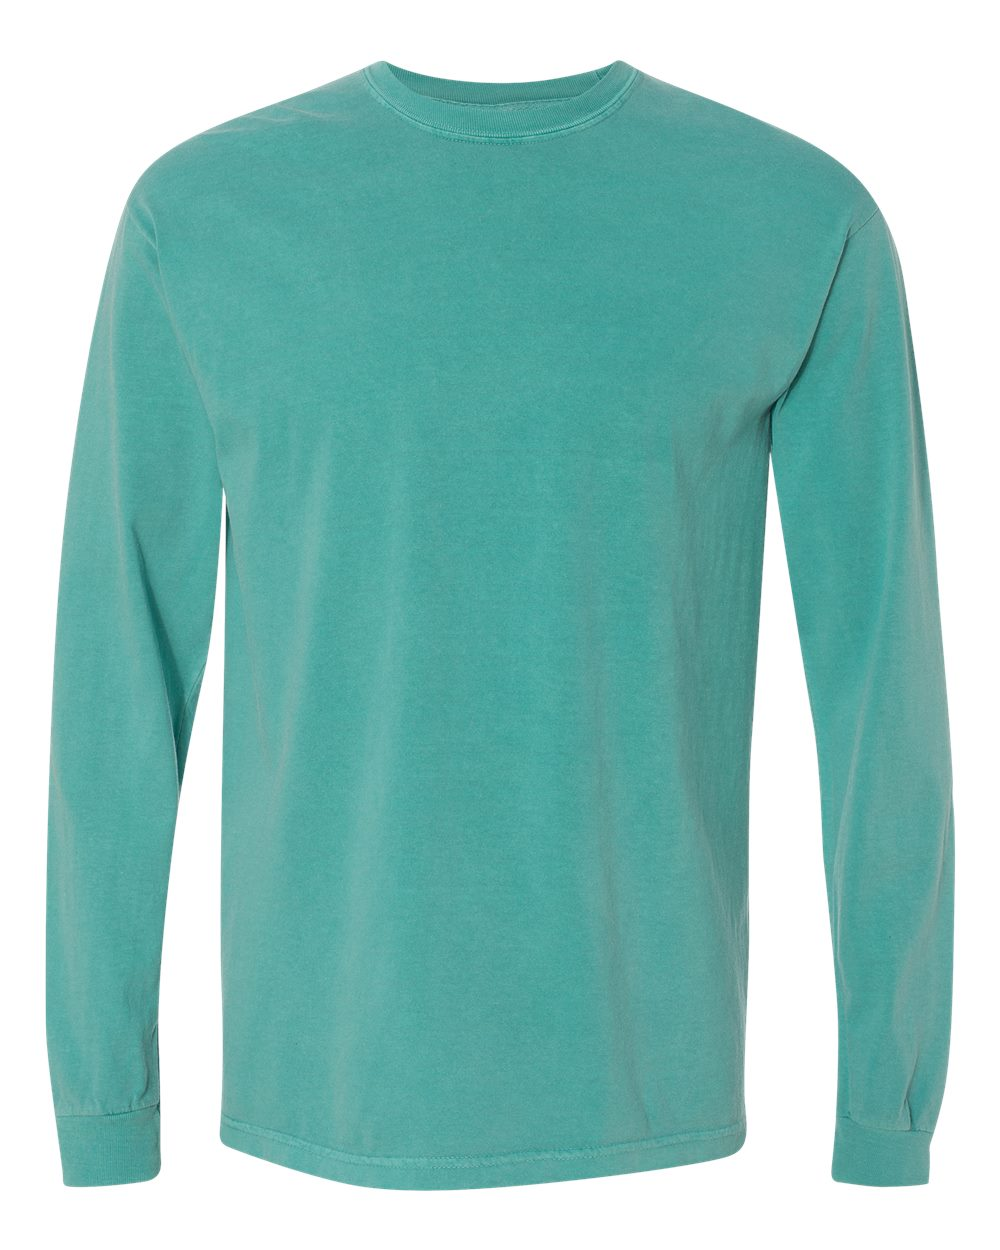 5a16869b Comfort Colors Long Sleeve Tee